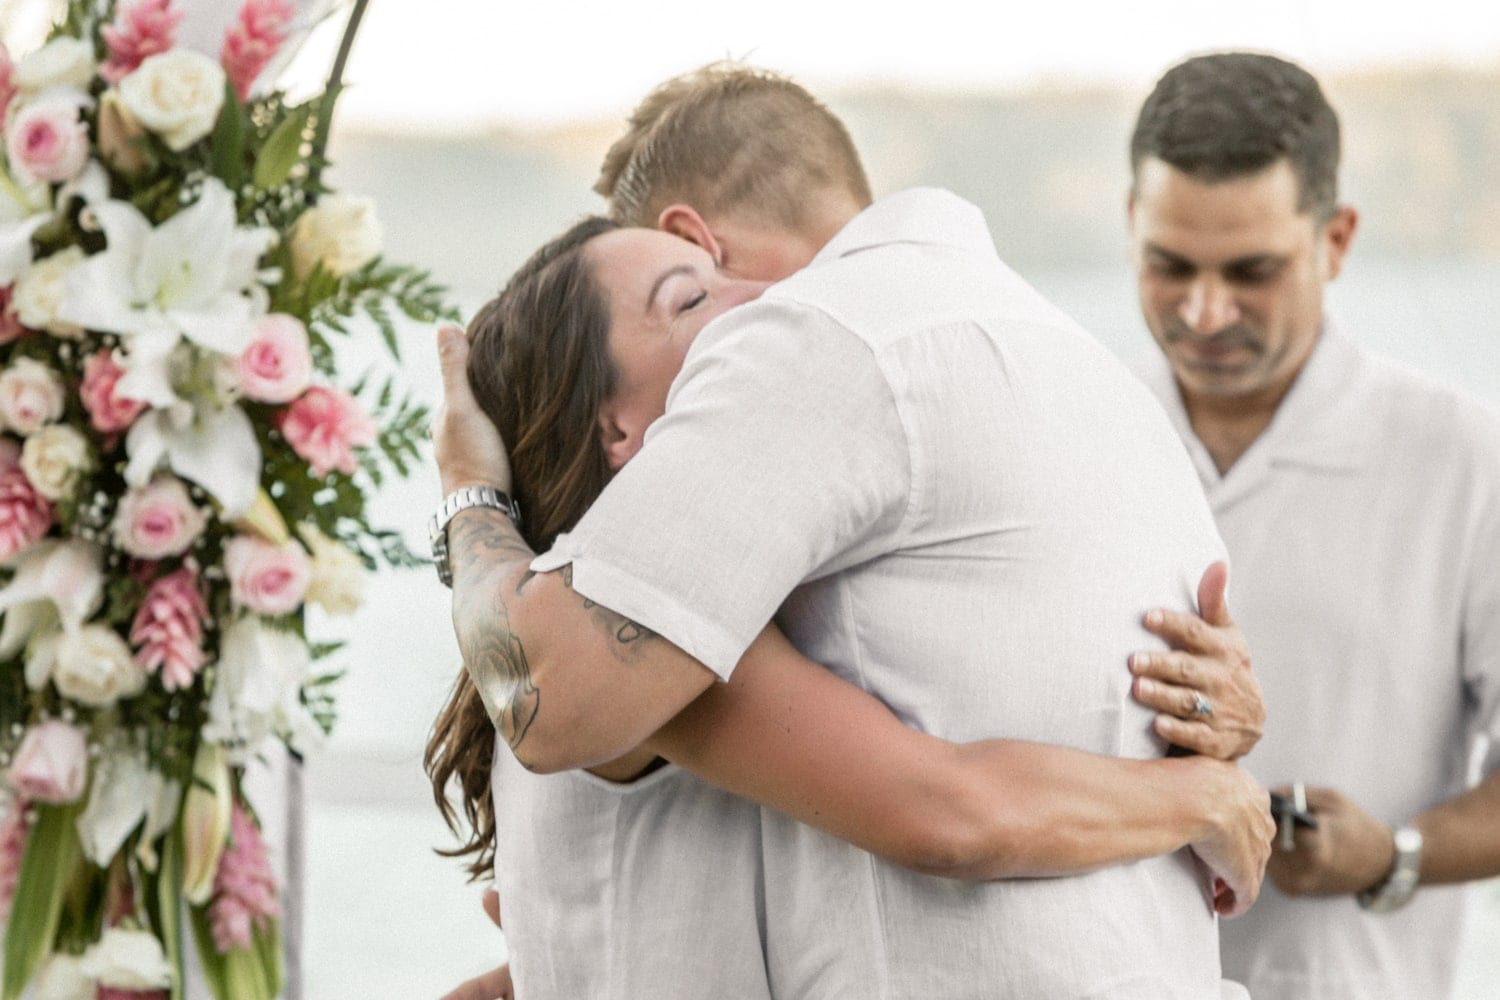 Couple hug after exchanging vows and wedding rings.